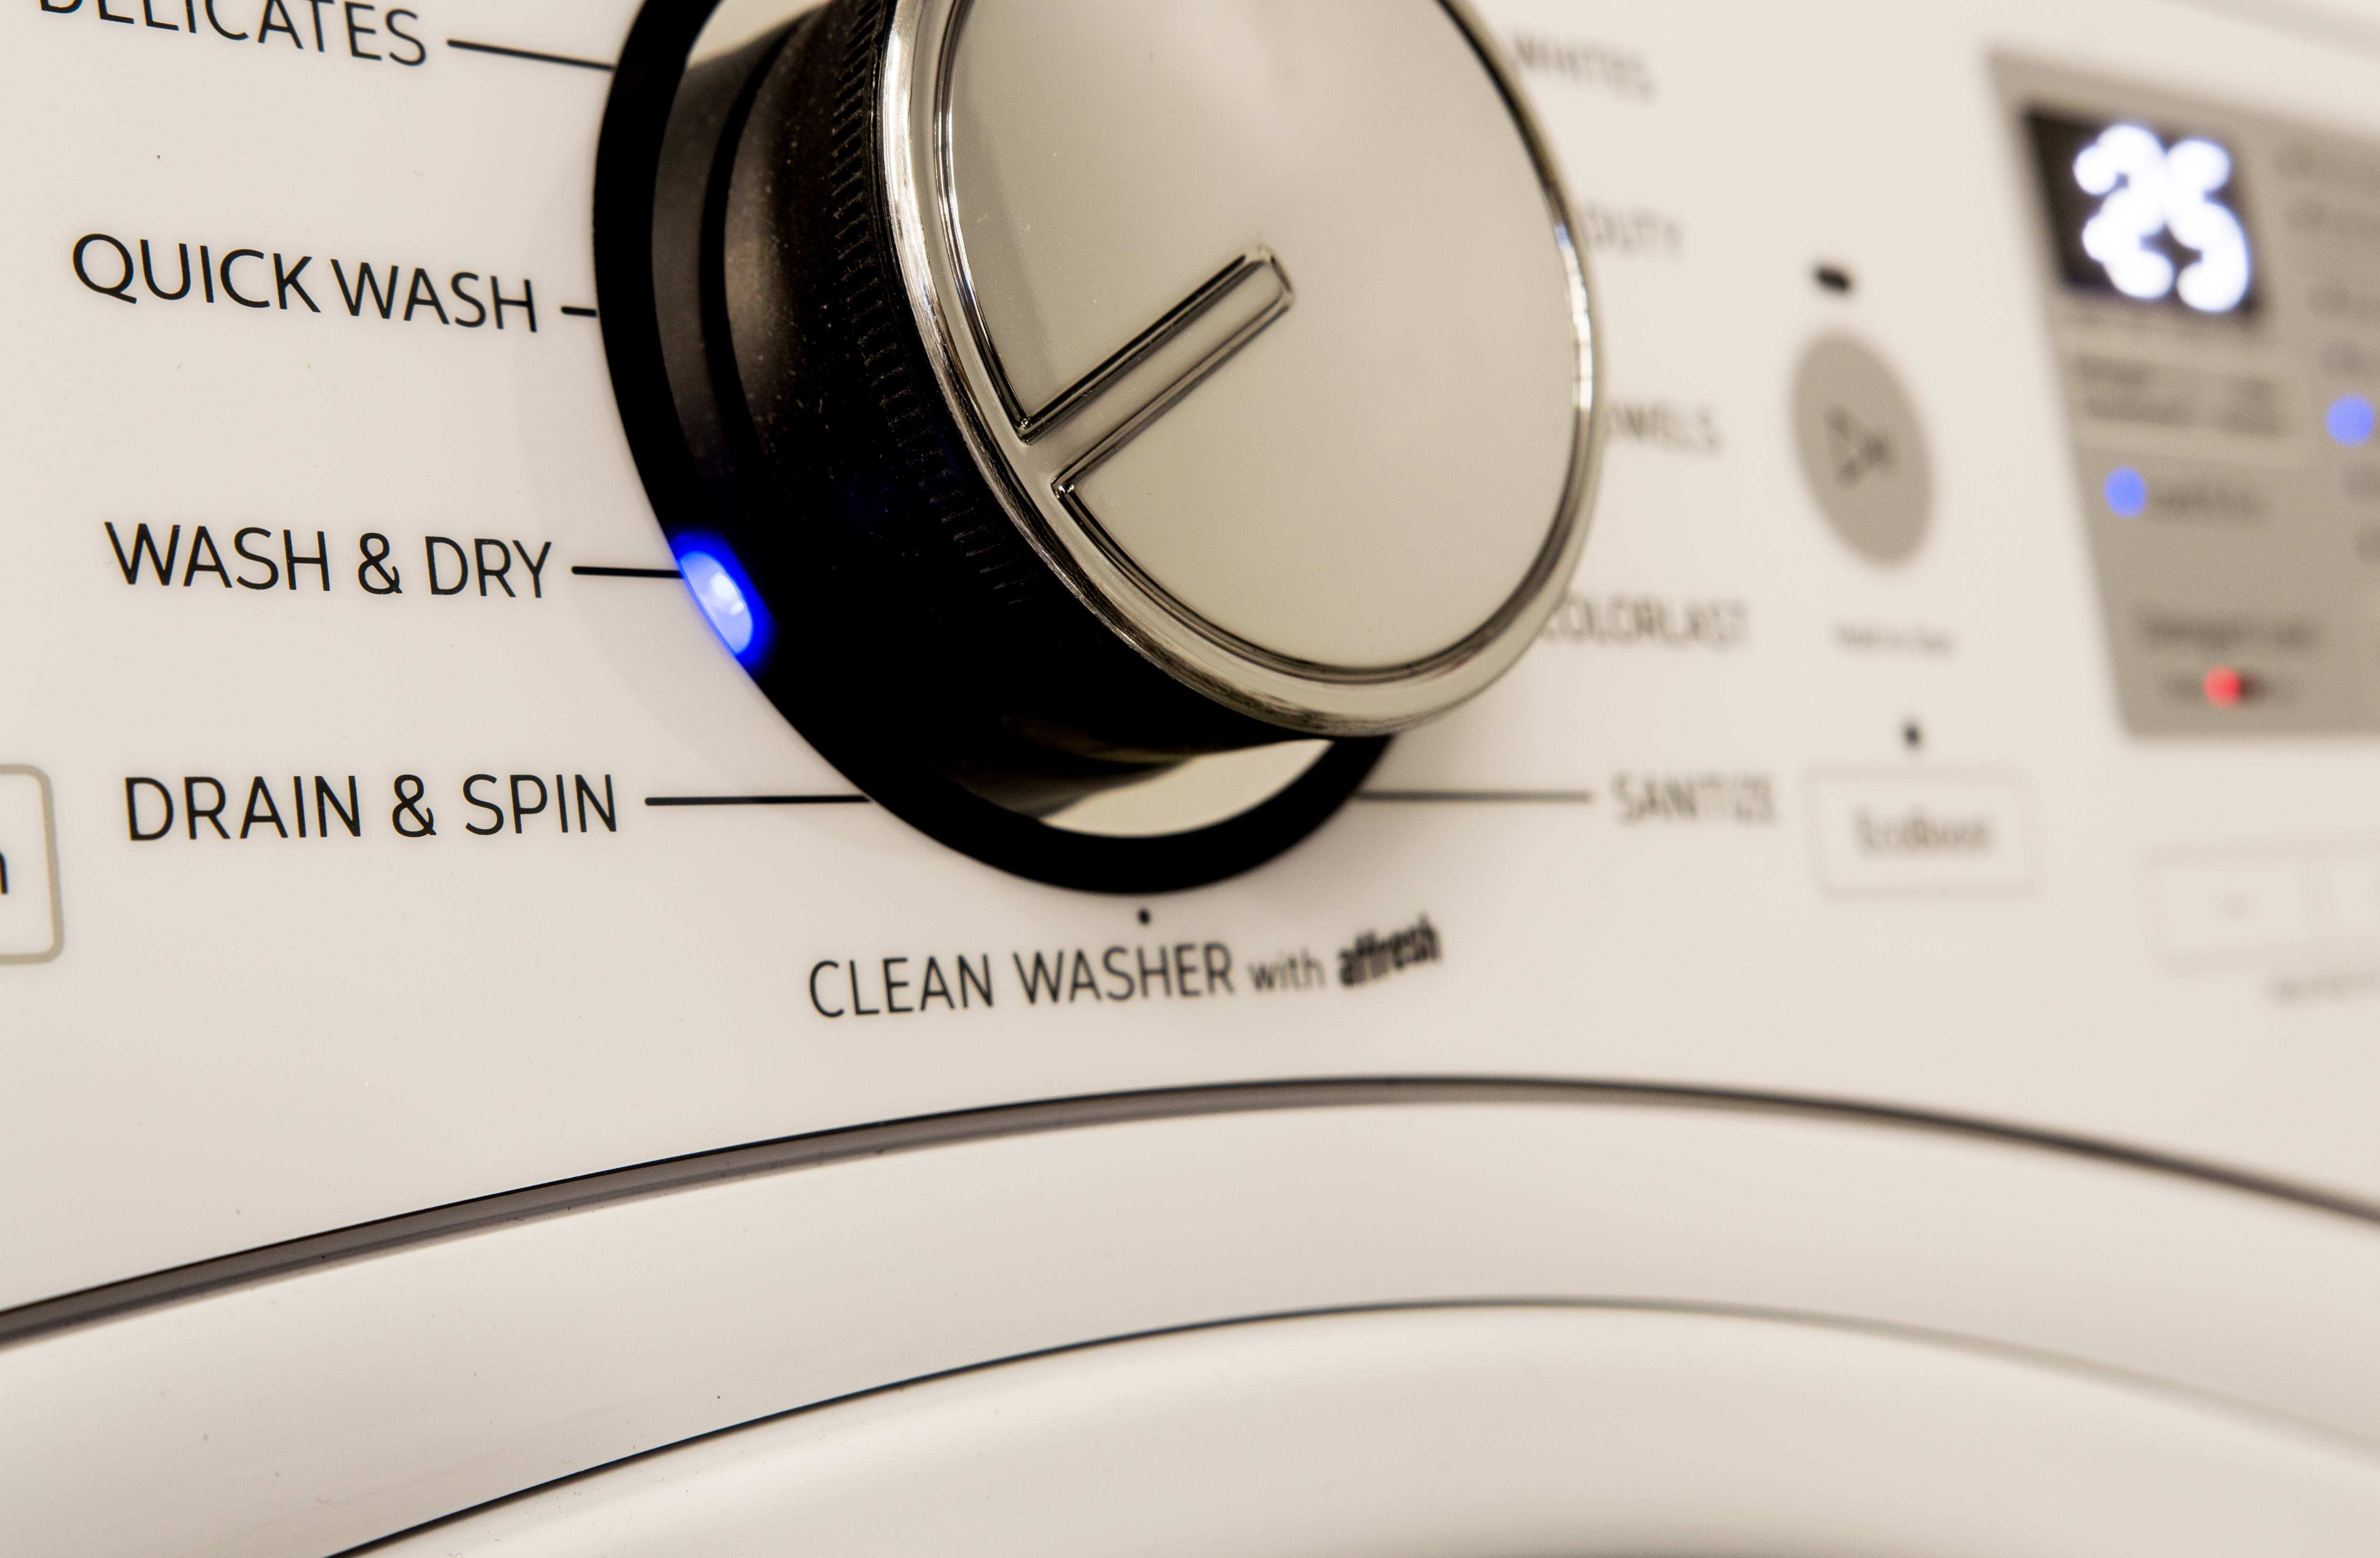 The Wash & Dry cycle allows you to wash and dry a small load of laundry overnight. This is a great time saver when you spill a little wine on a shirt.